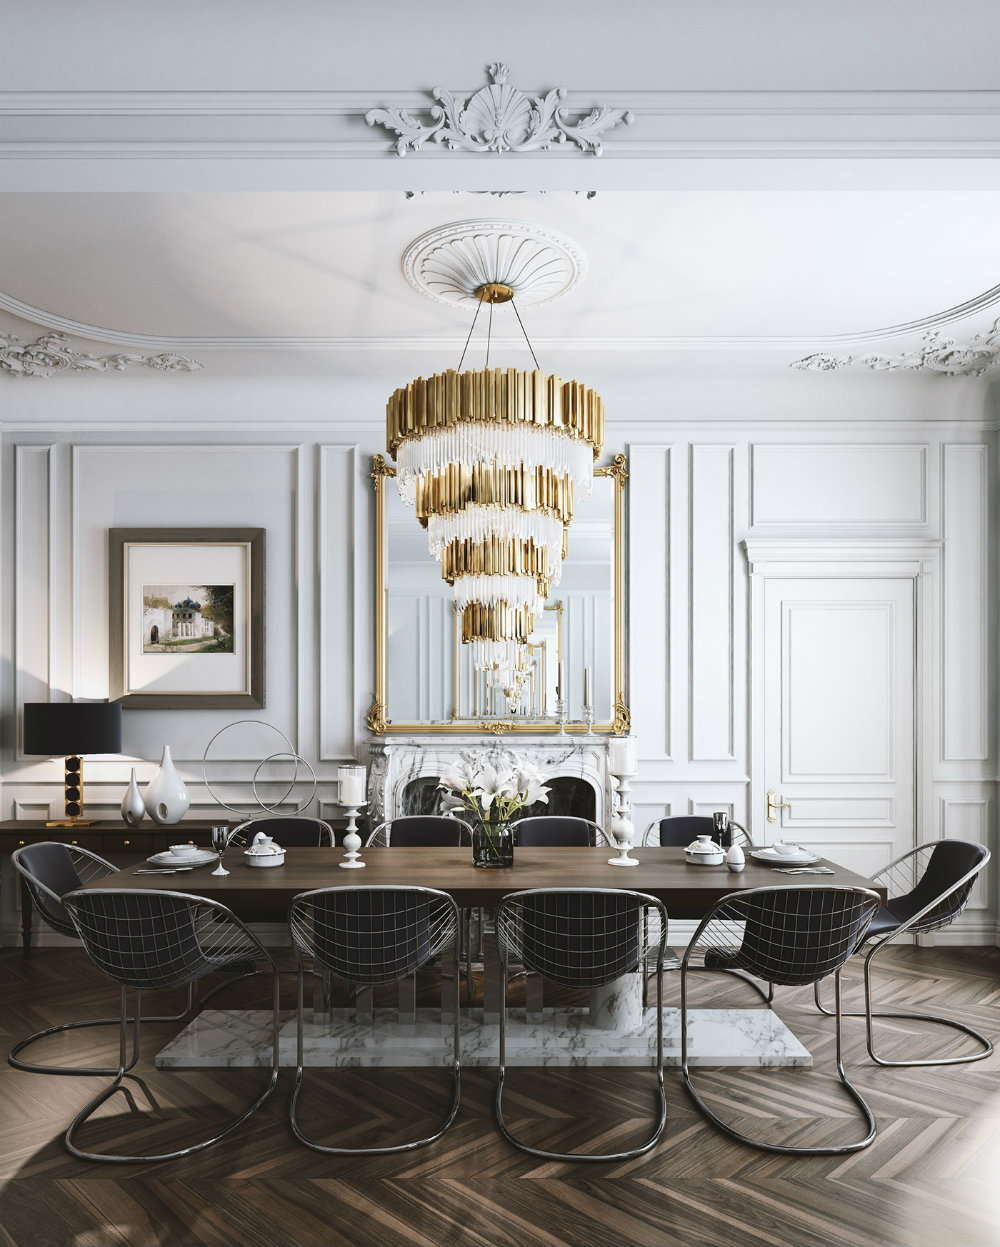 Amazing Chandeliers To Take Your Living Room To The Next Level  living room Amazing Chandeliers To Take Your Living Room To The Next Level  Amazing Chandeliers To Take Your Living Room To The Next Level 4